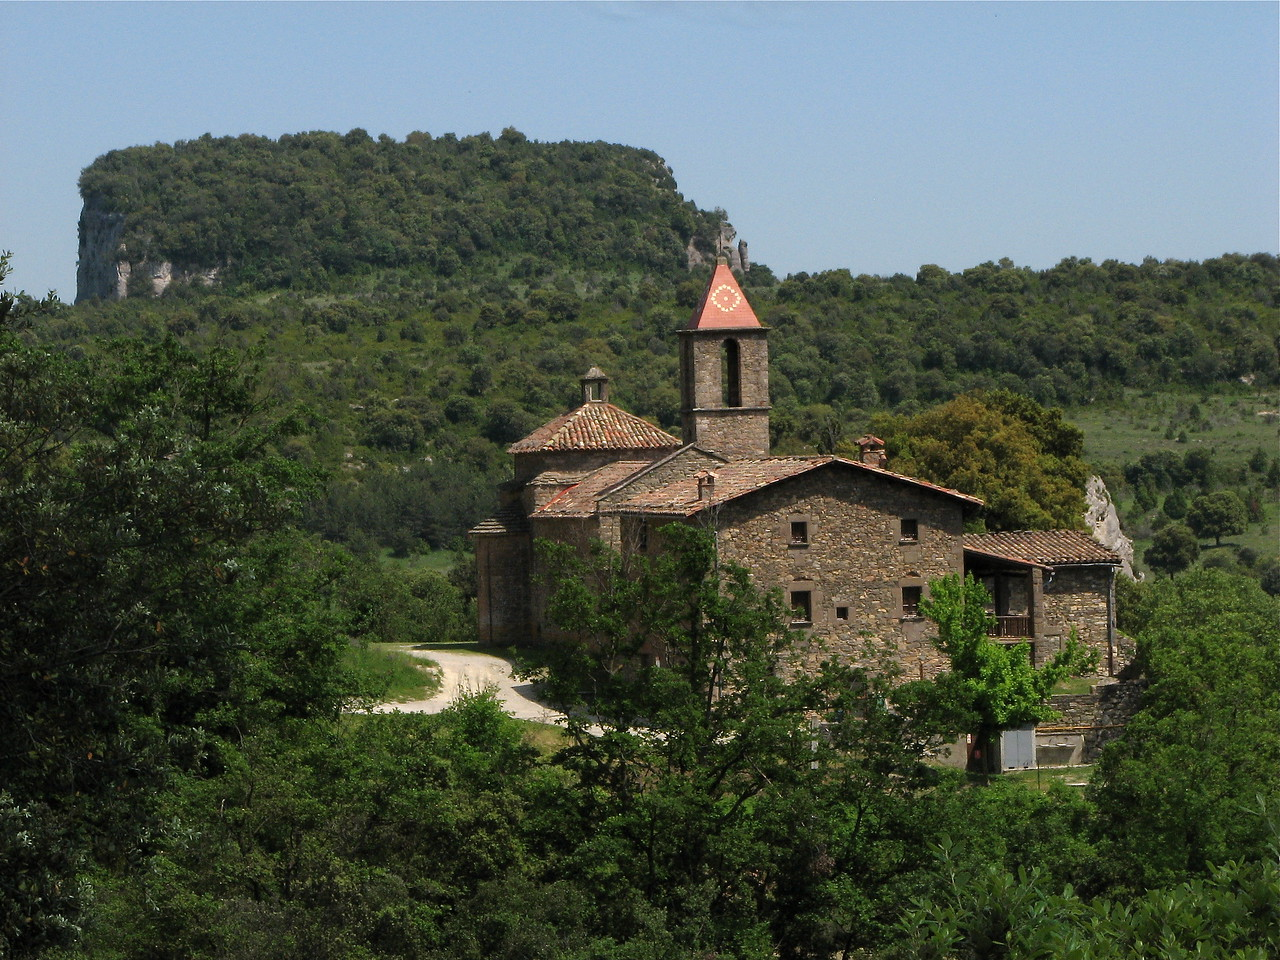 Old church in the hills south of Rupit, Catalonia, Spain.  In the background is a limestone outcrop atop a plateau.